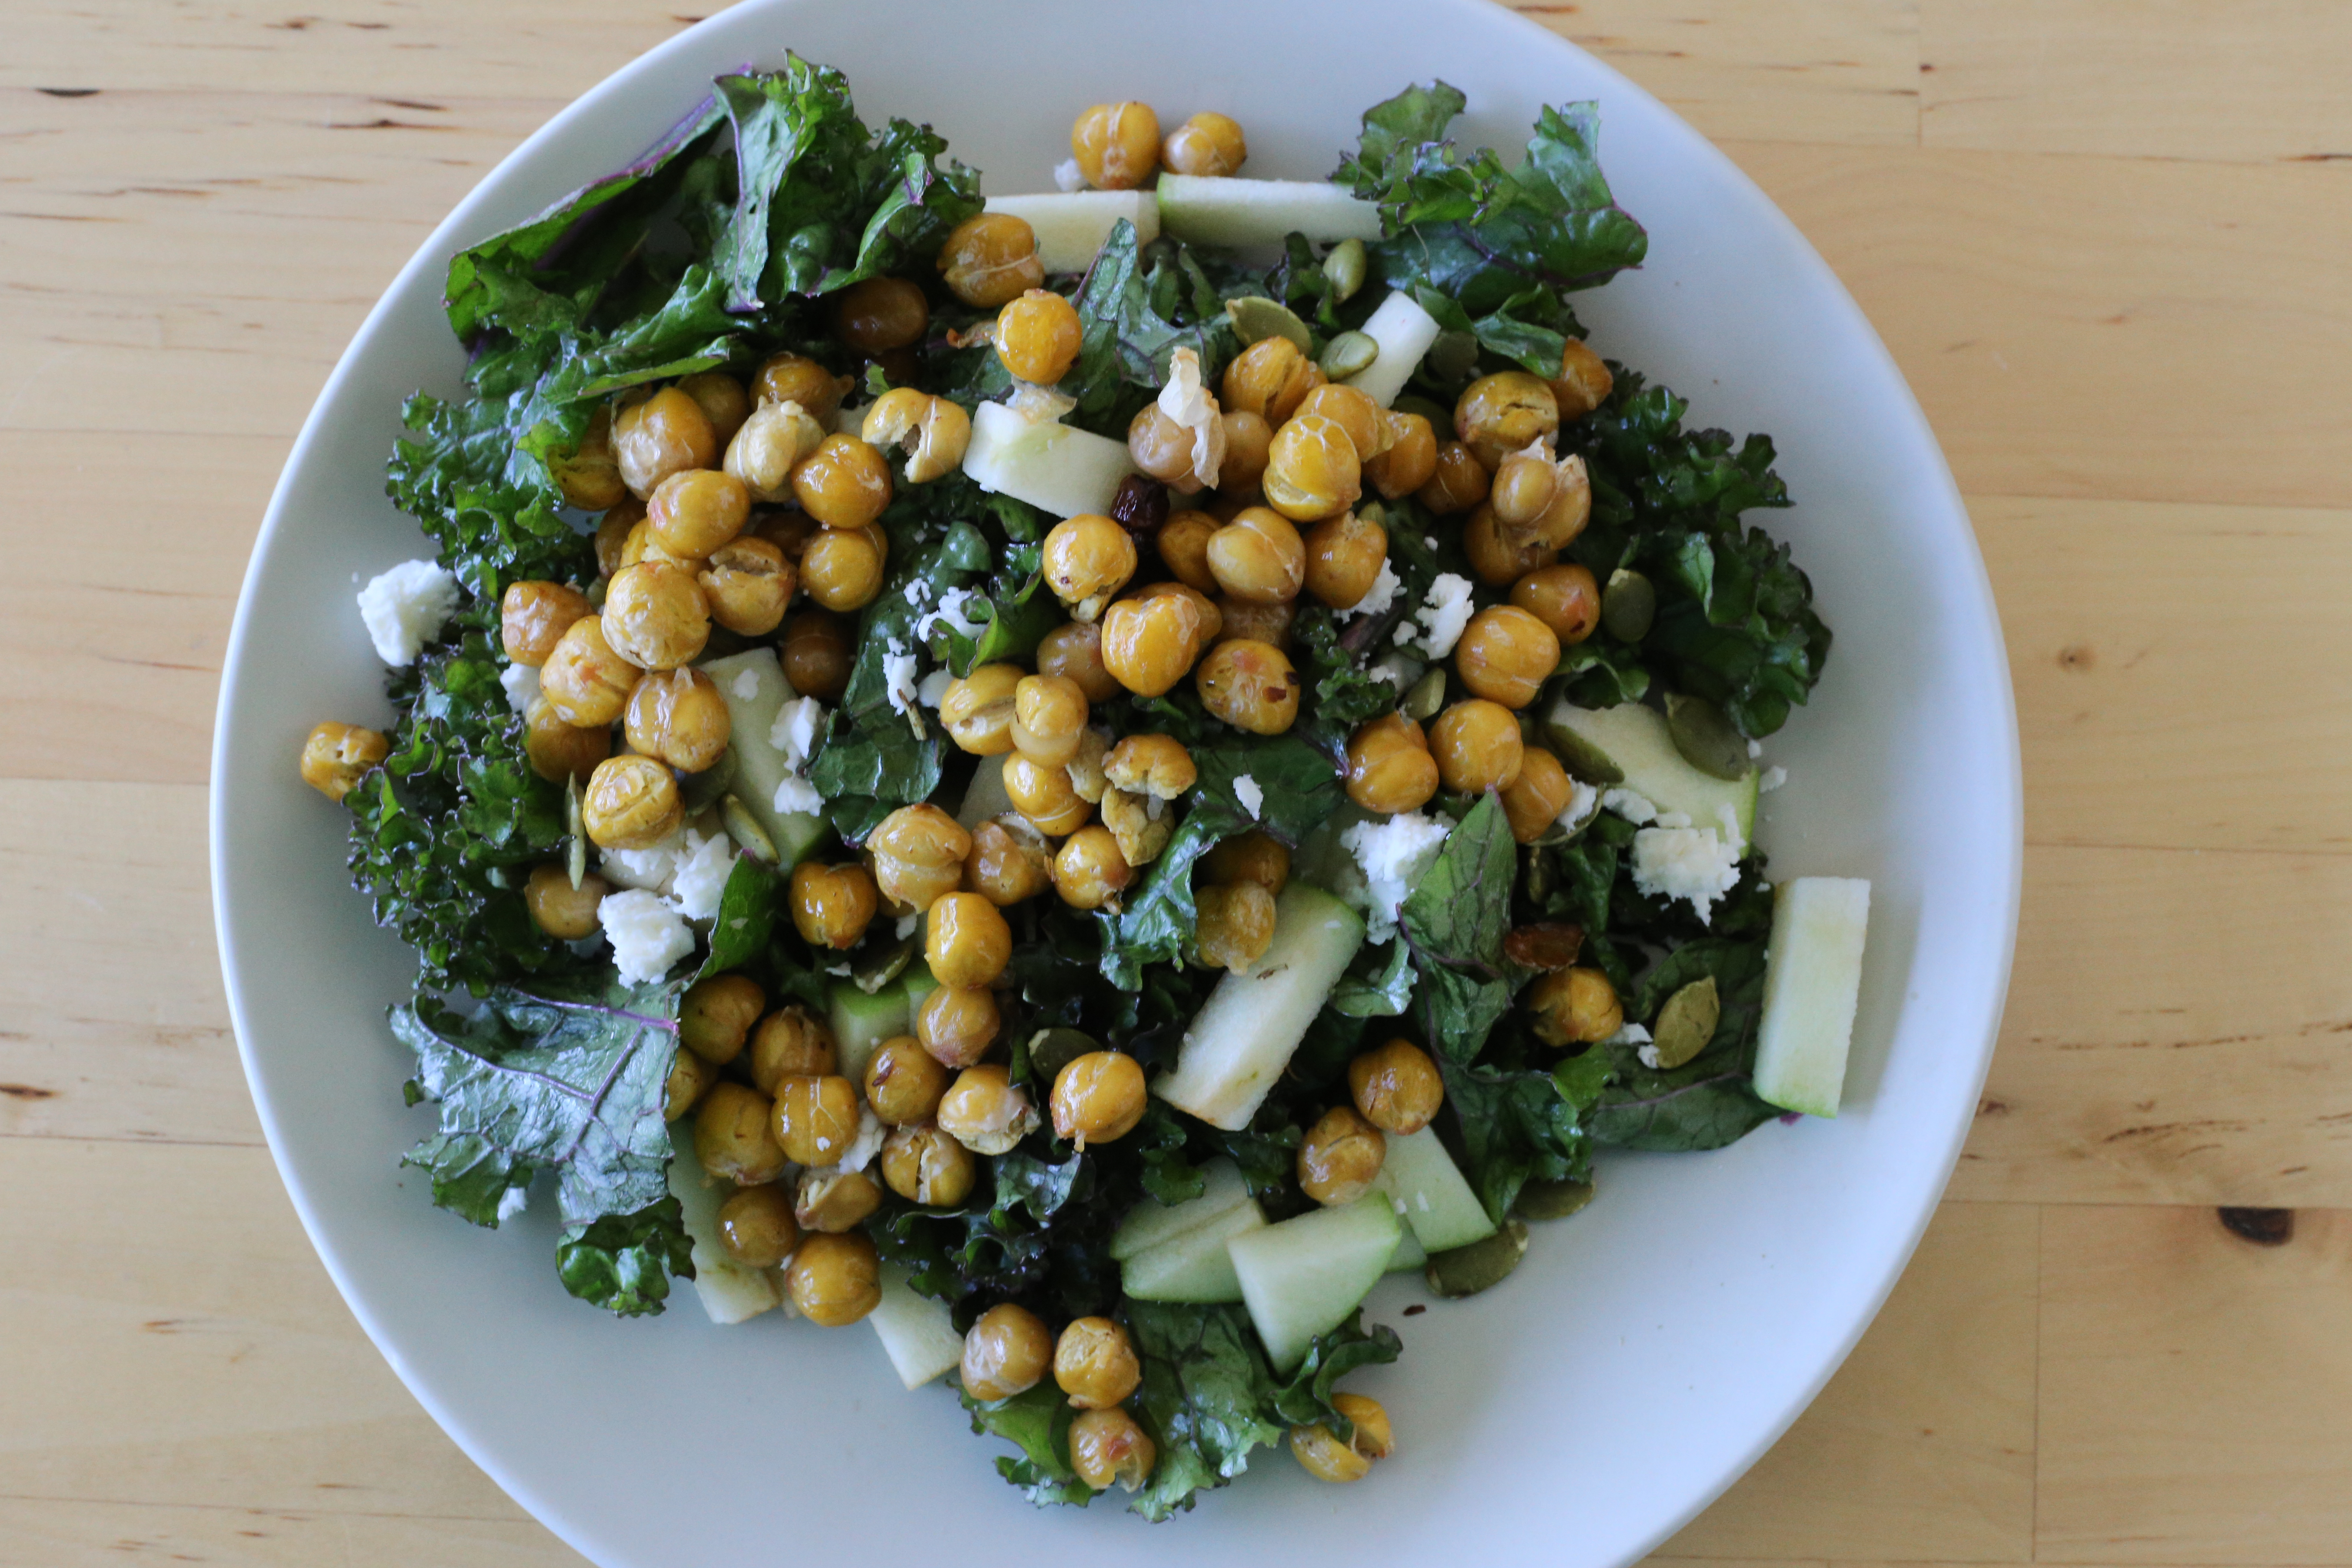 Then top with crunchy roasted chickpeas, pumpkin seeds, and feta.